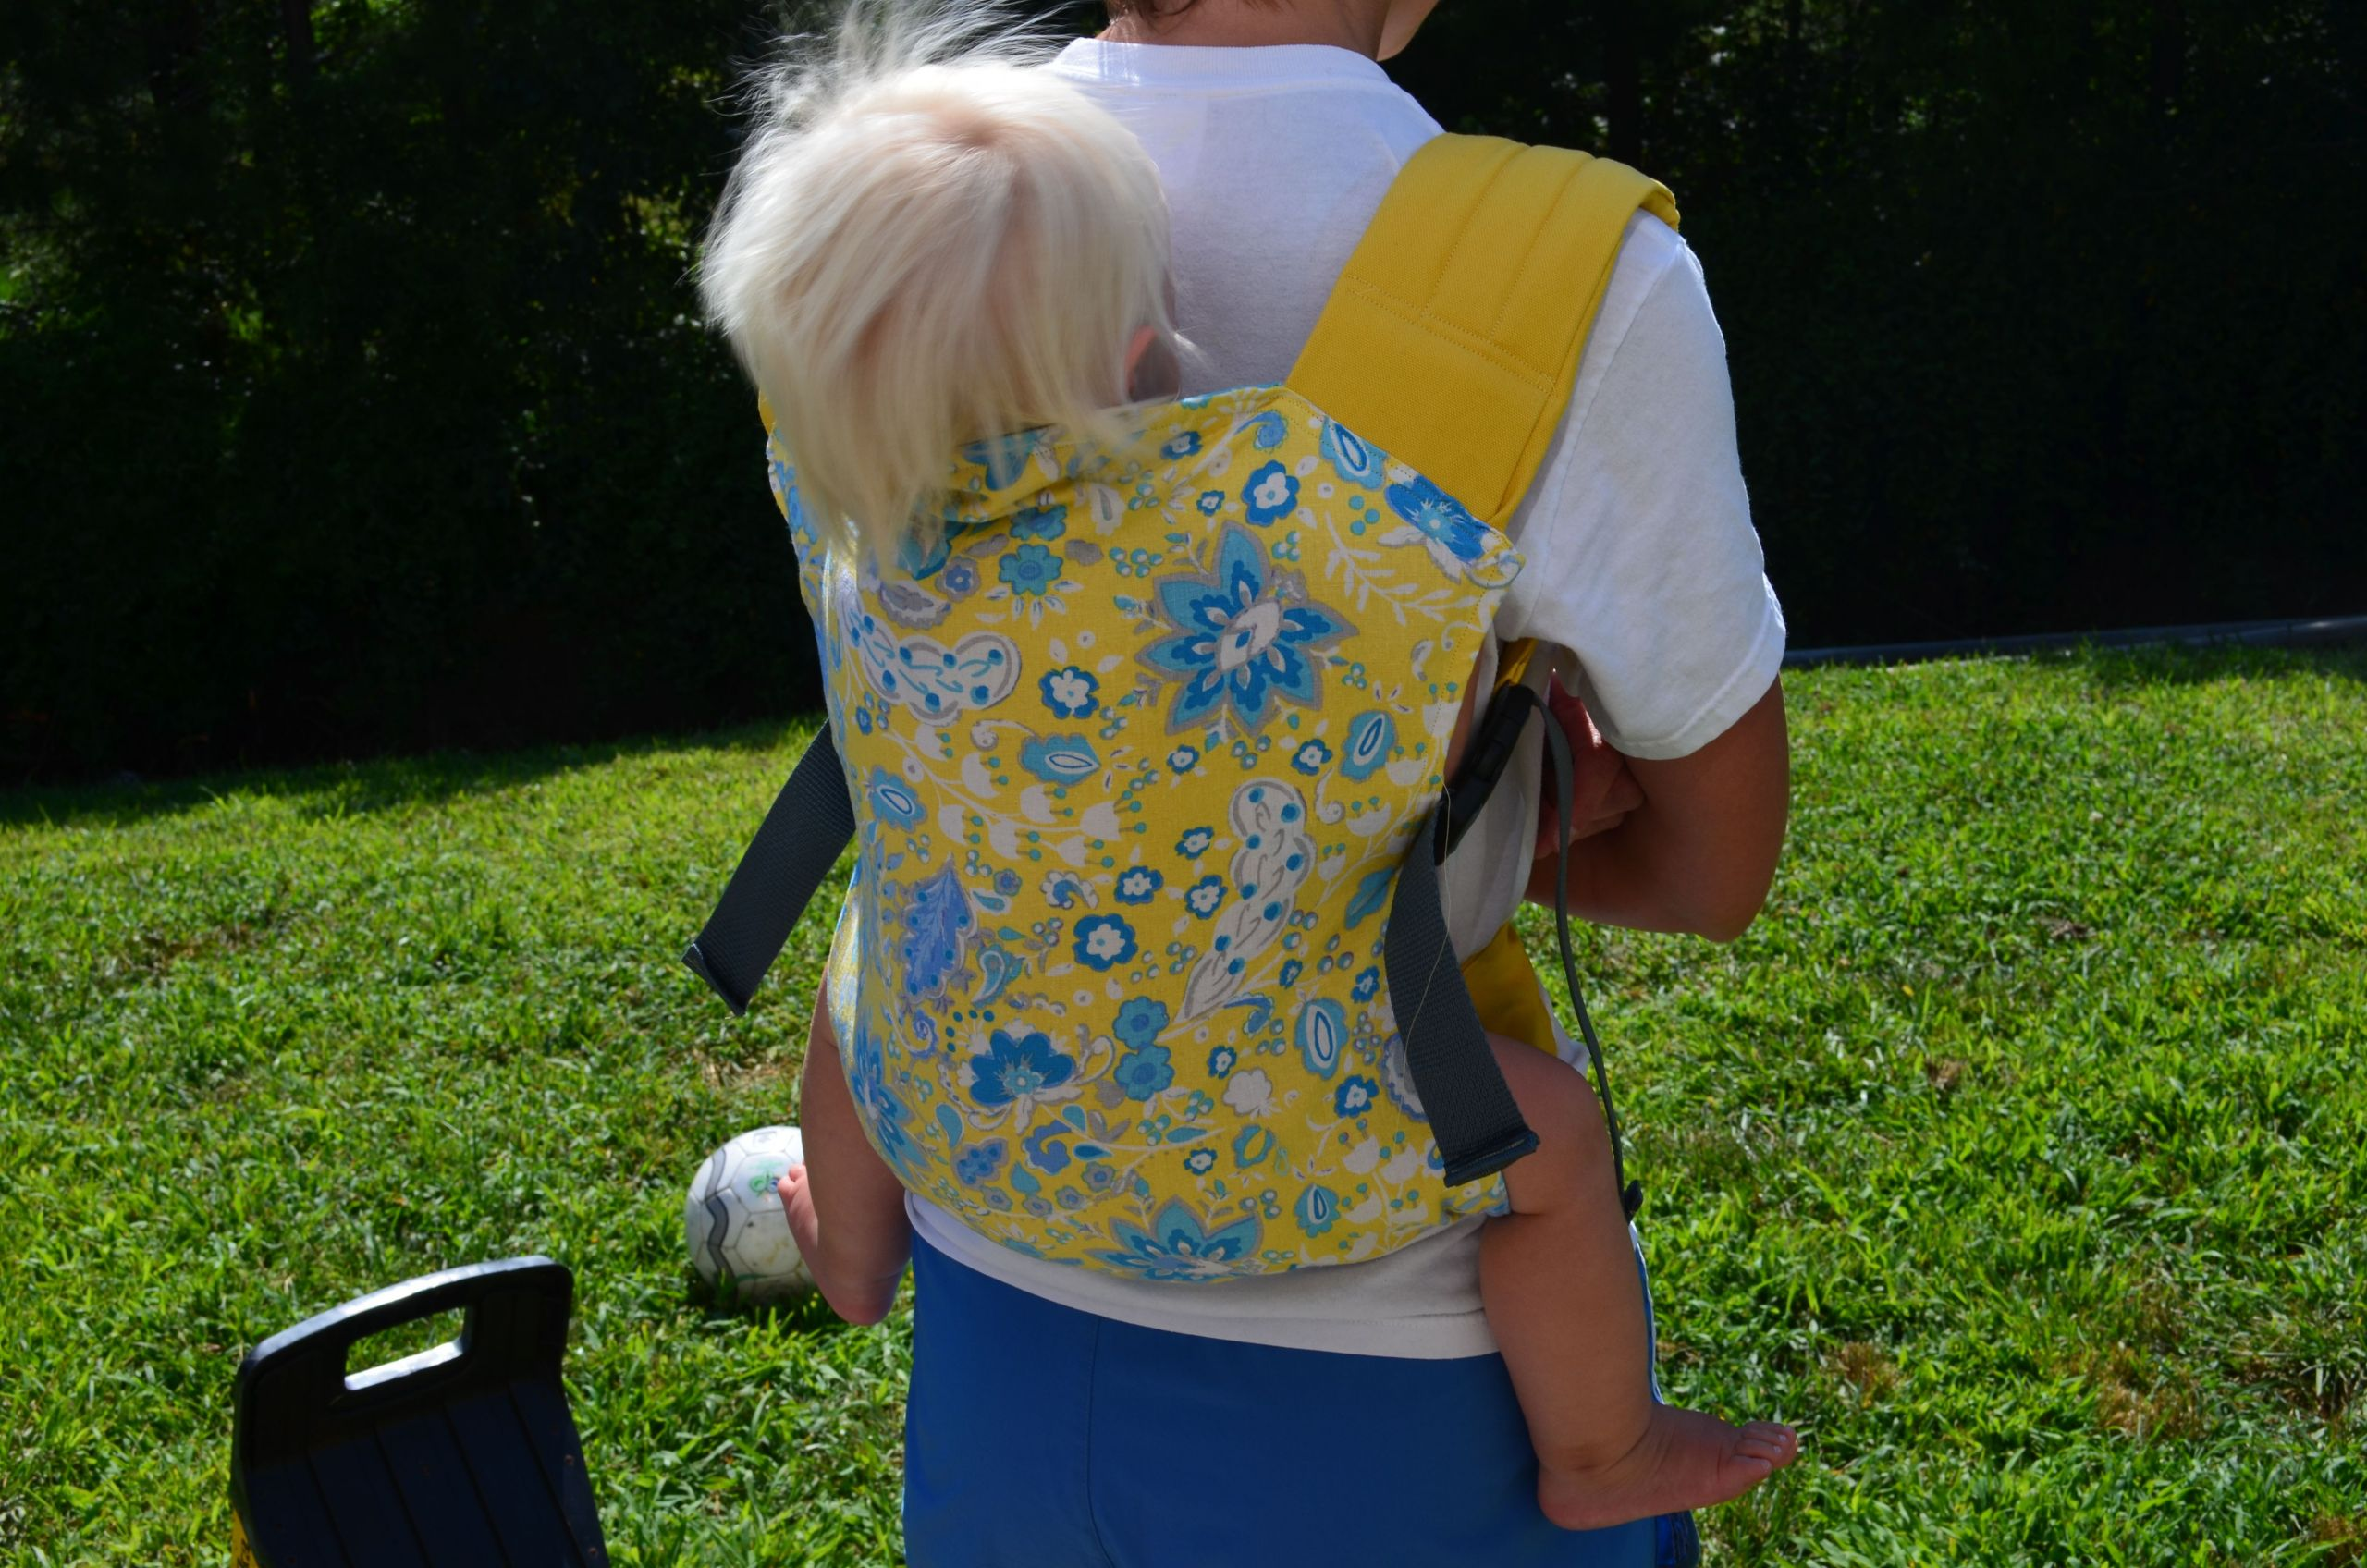 DIY Toddler Carrier  Adventures in Carrier Making A Brief Guide to DIY